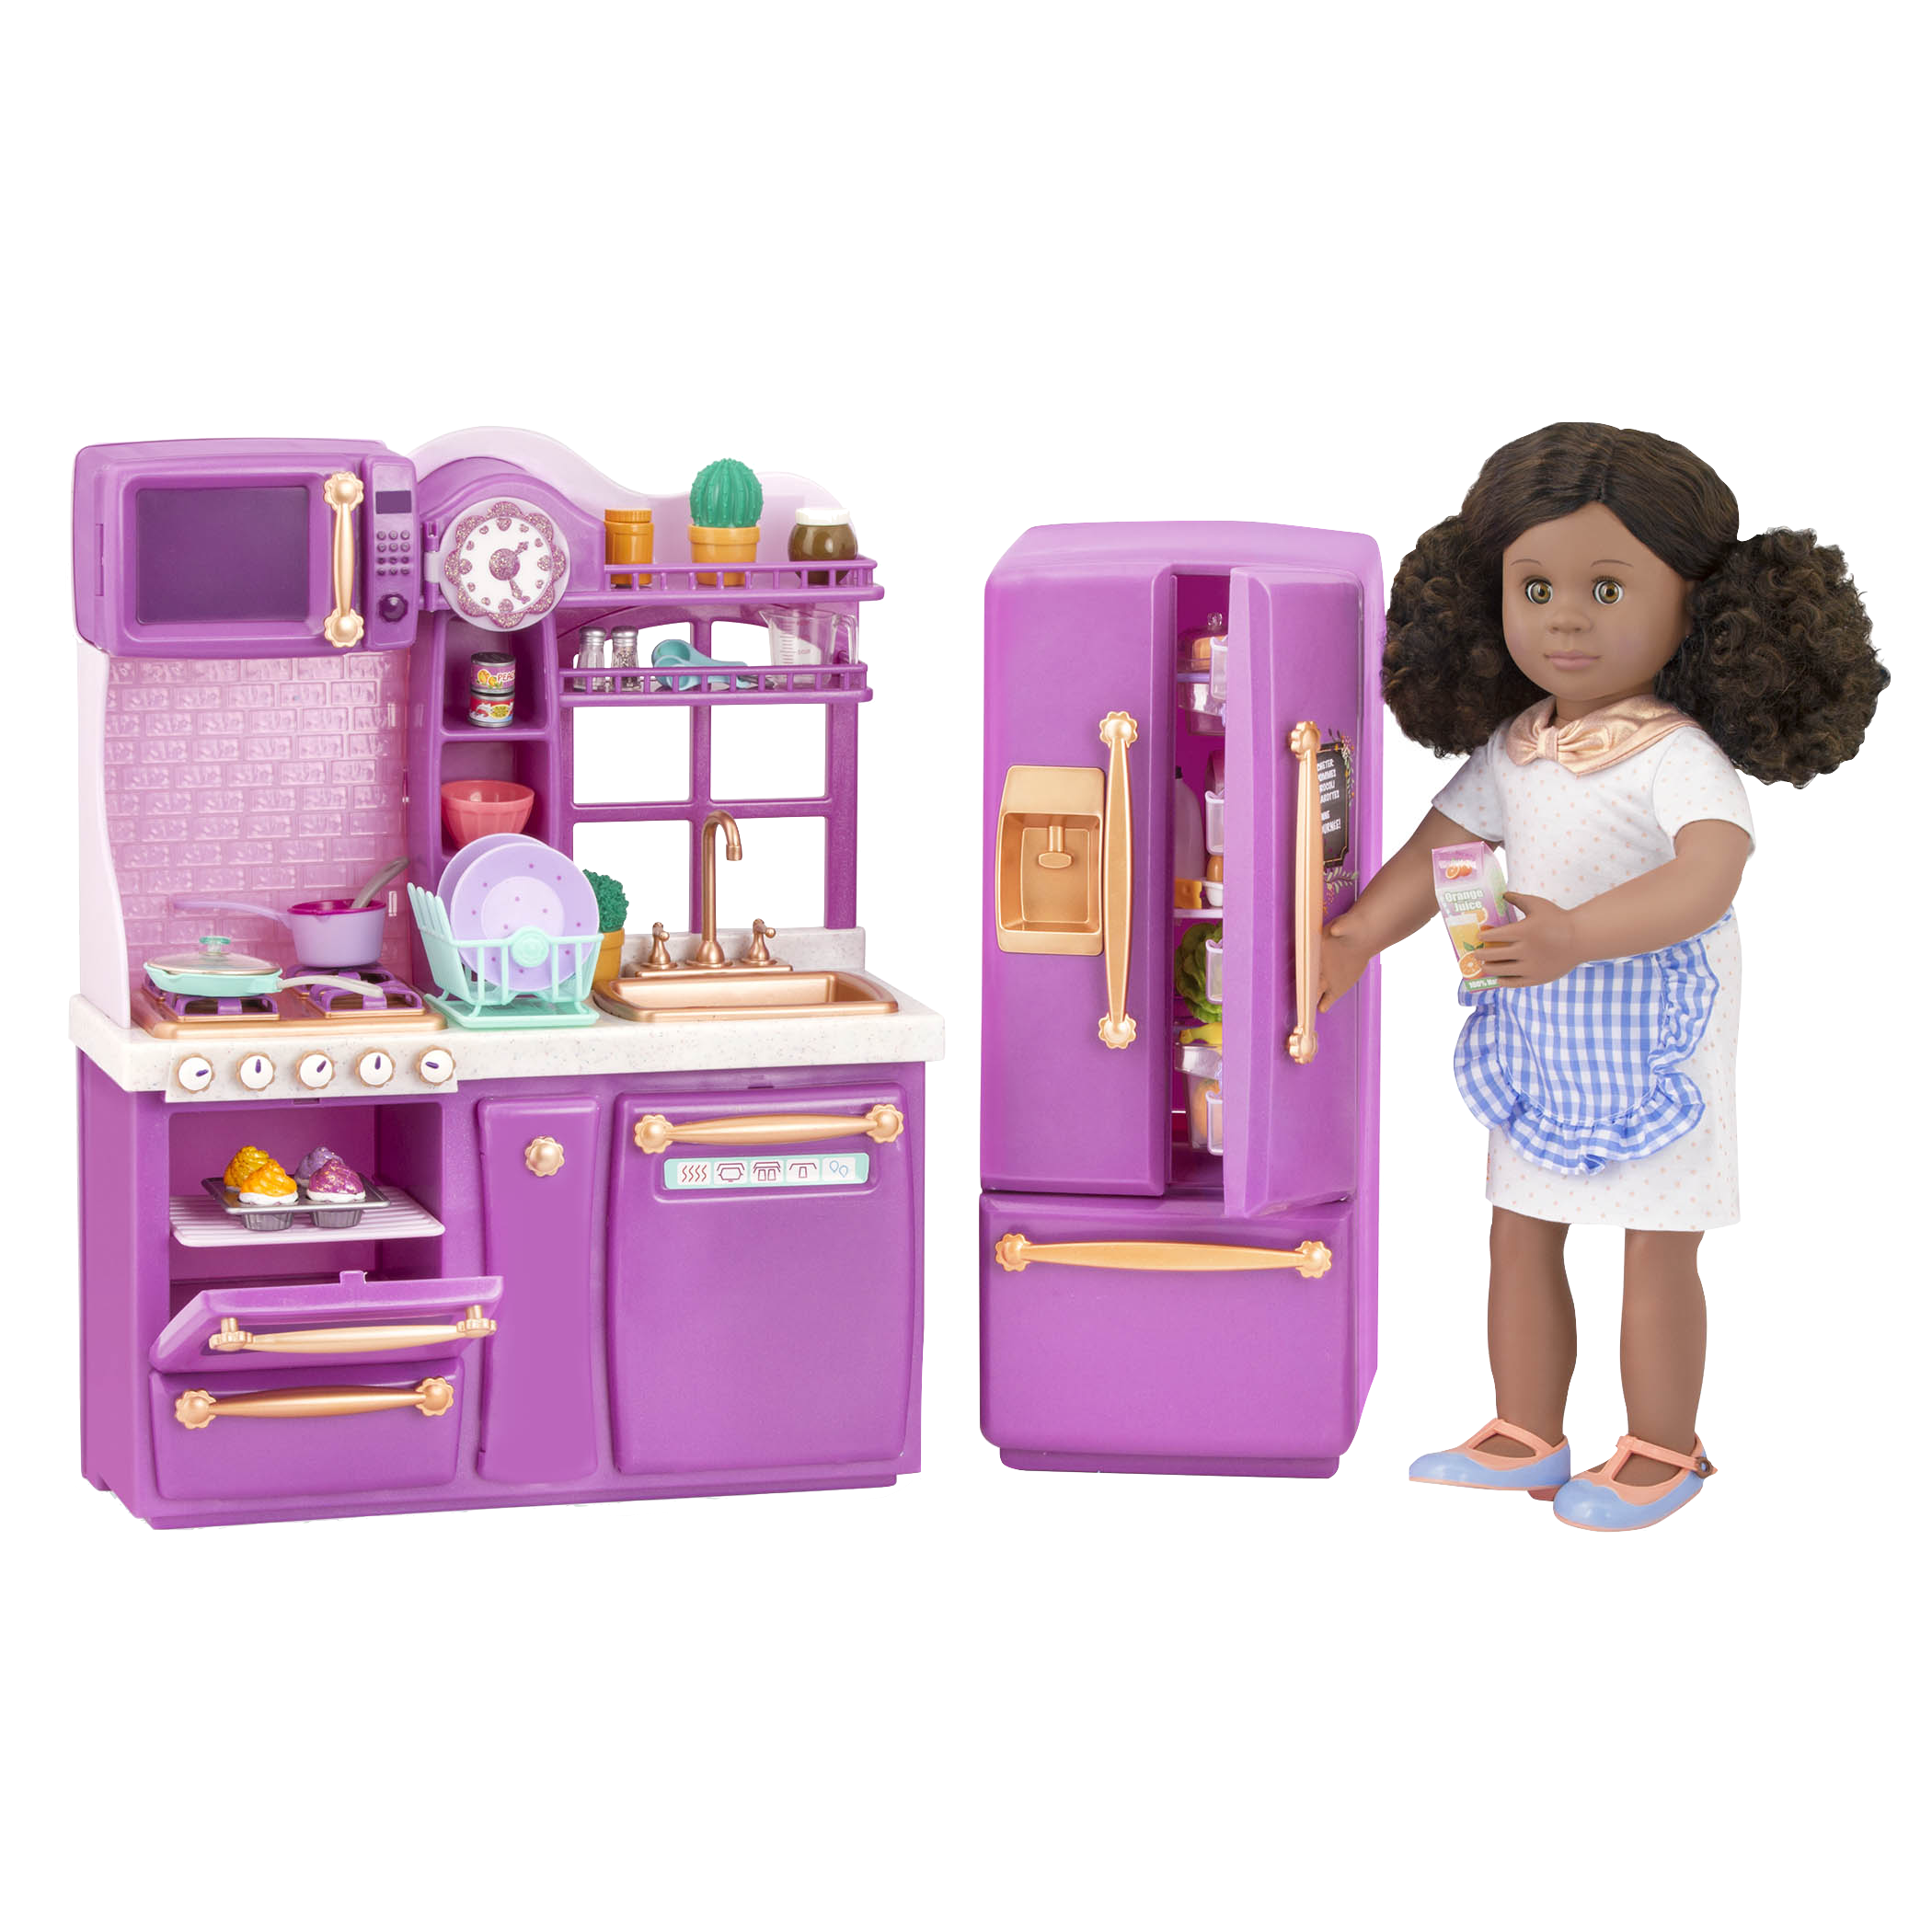 Purple Gourmet Kitchen Dollhouse Cooking Furniture Our Generation